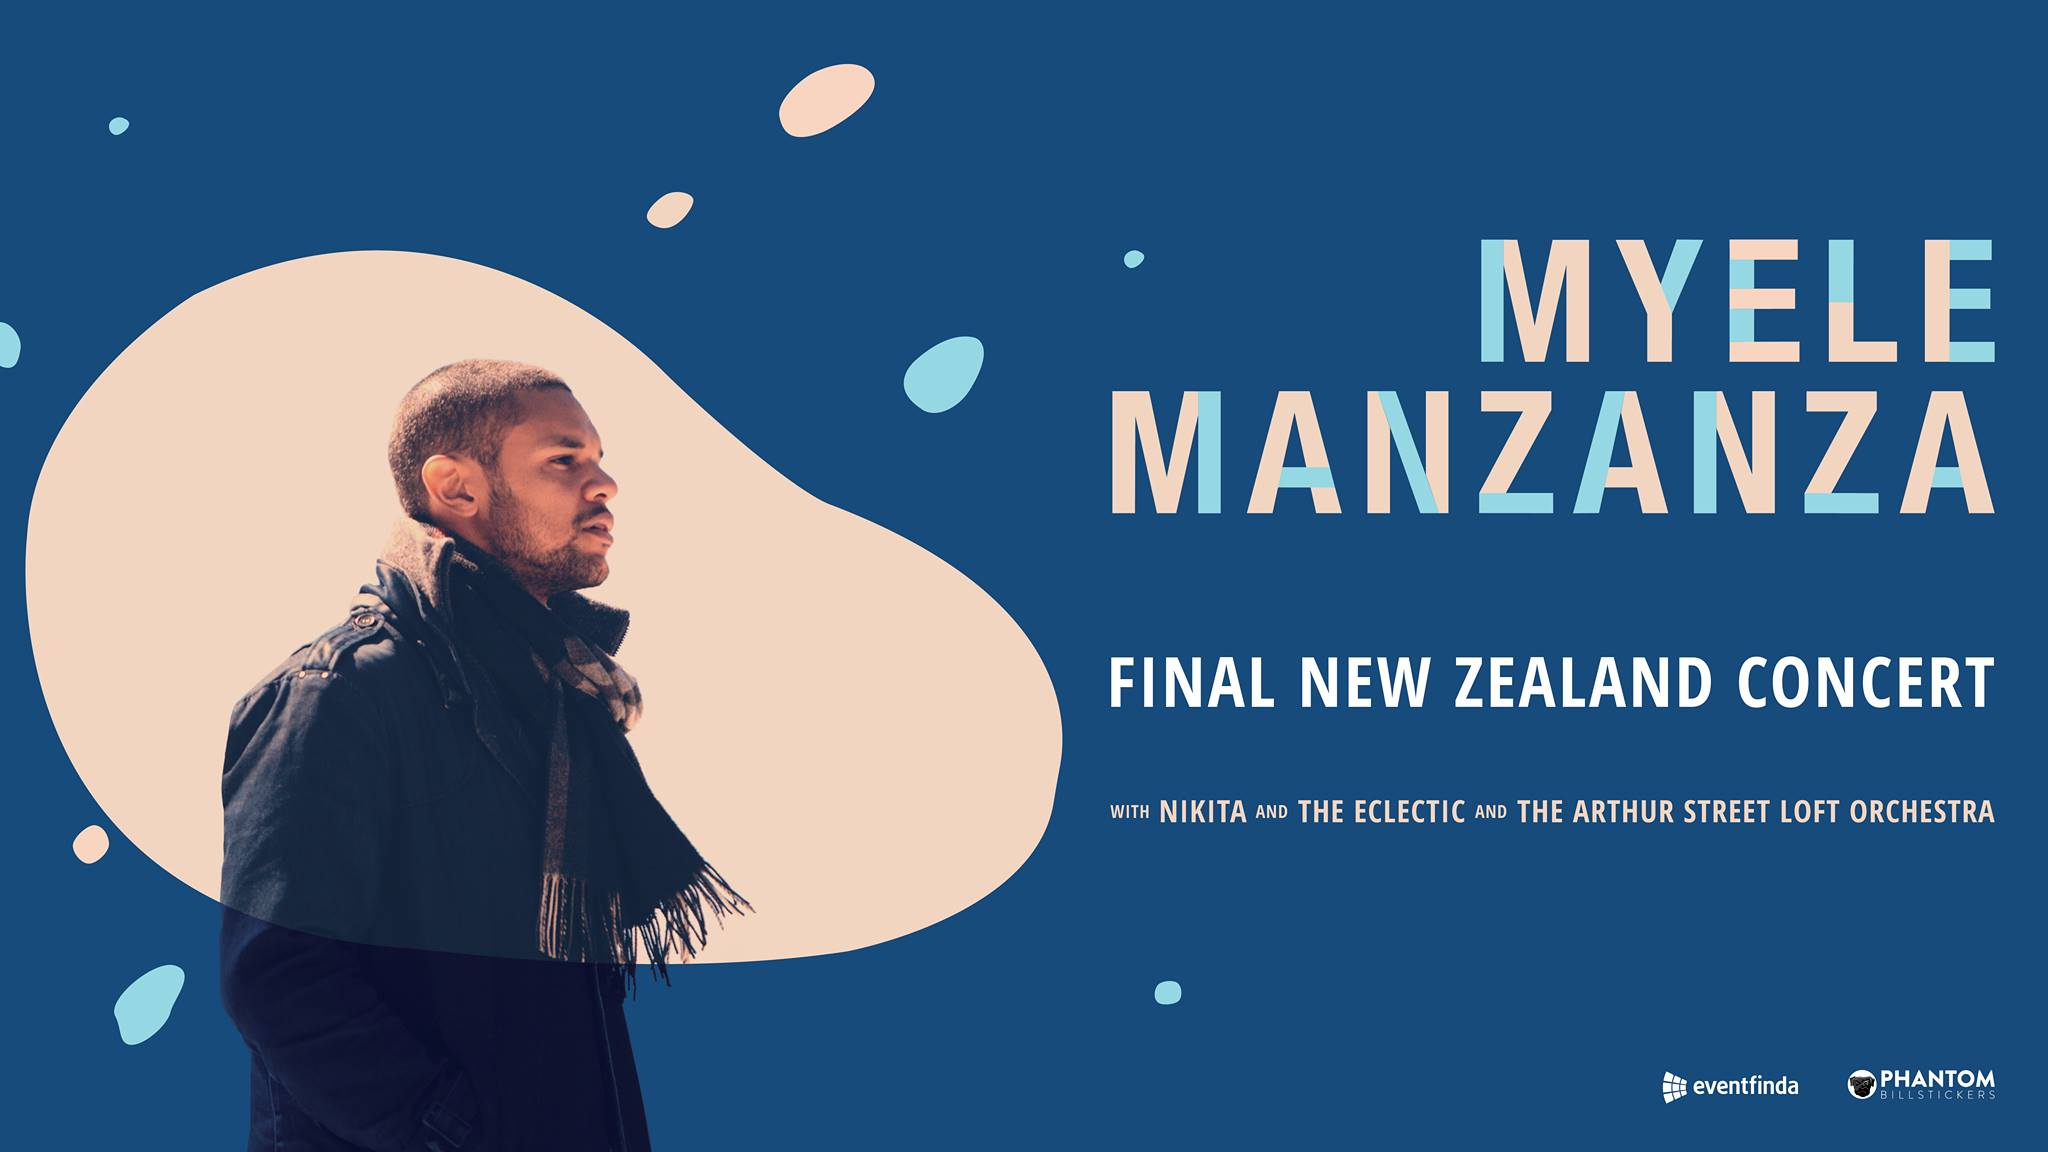 Myles Manzanza - Final New Zealand Concert